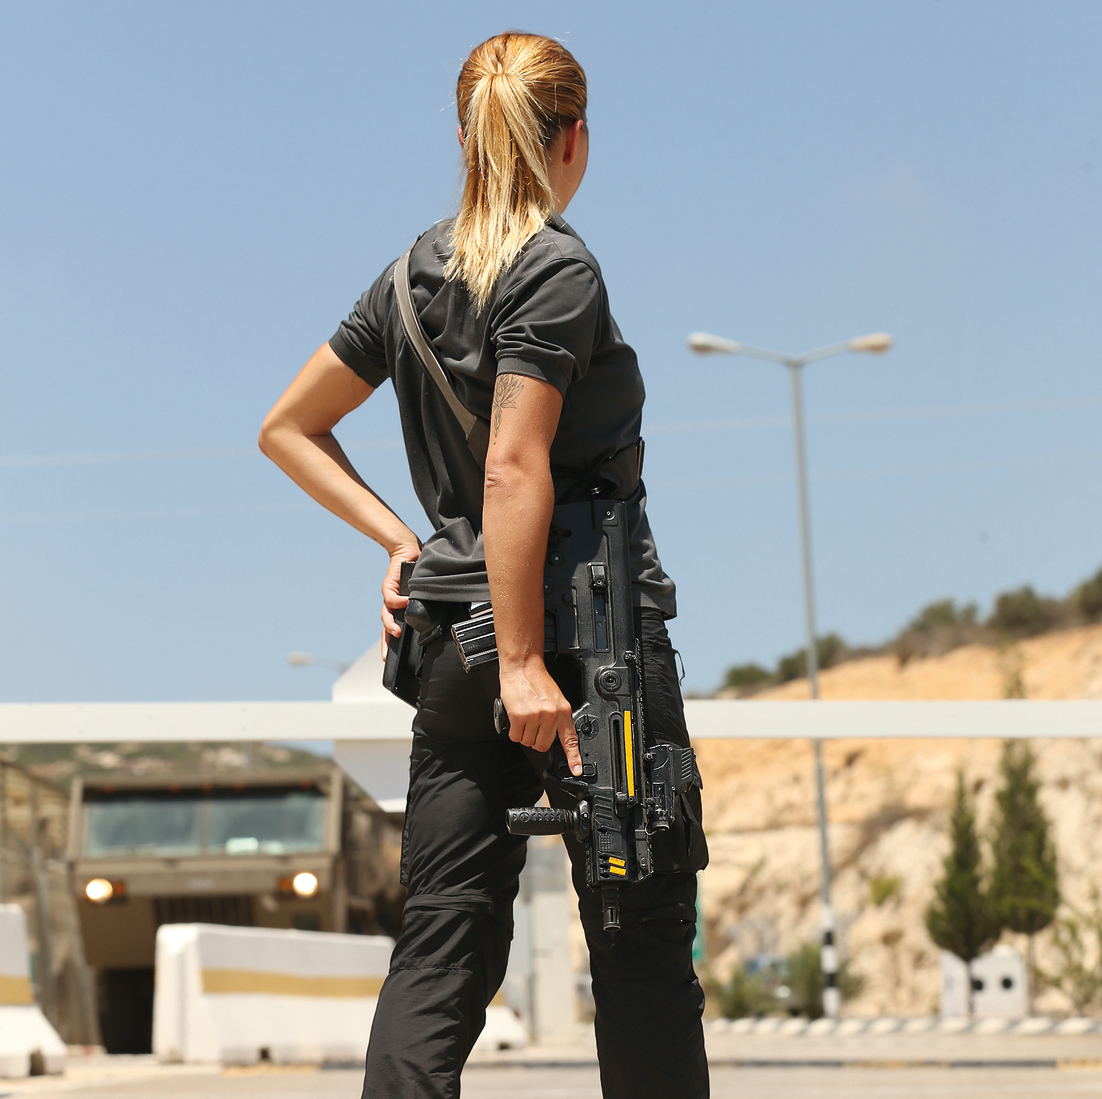 Renata, the first female checkpoint security guard